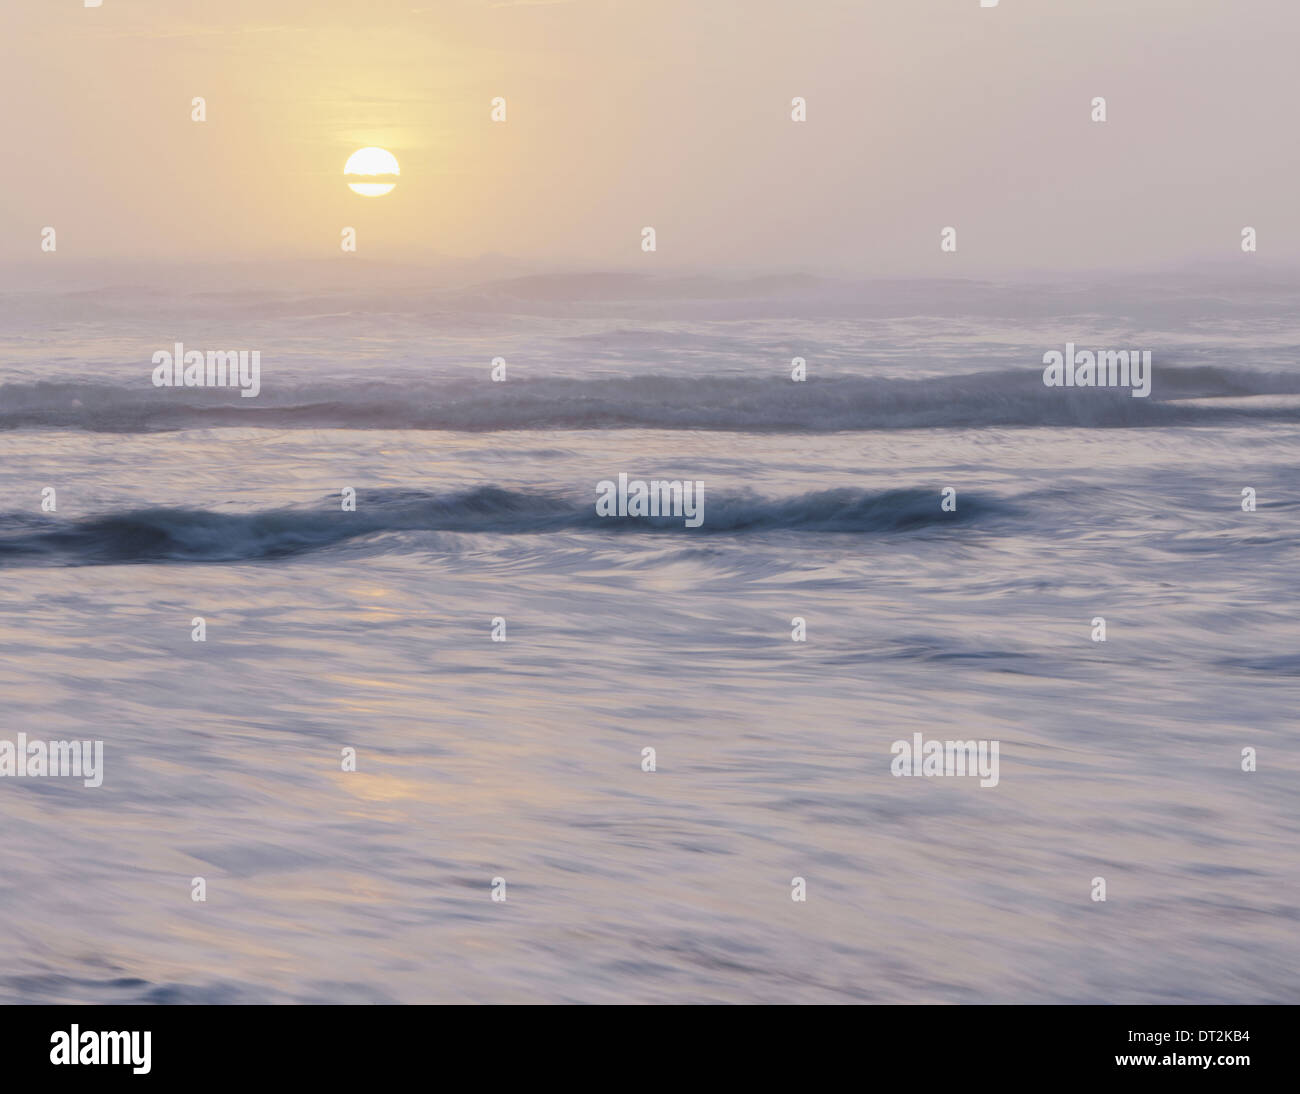 Olympic National park View out over the sea and gentle swell in the waters off the shore Sunset Sun sinking below the horizon - Stock Image